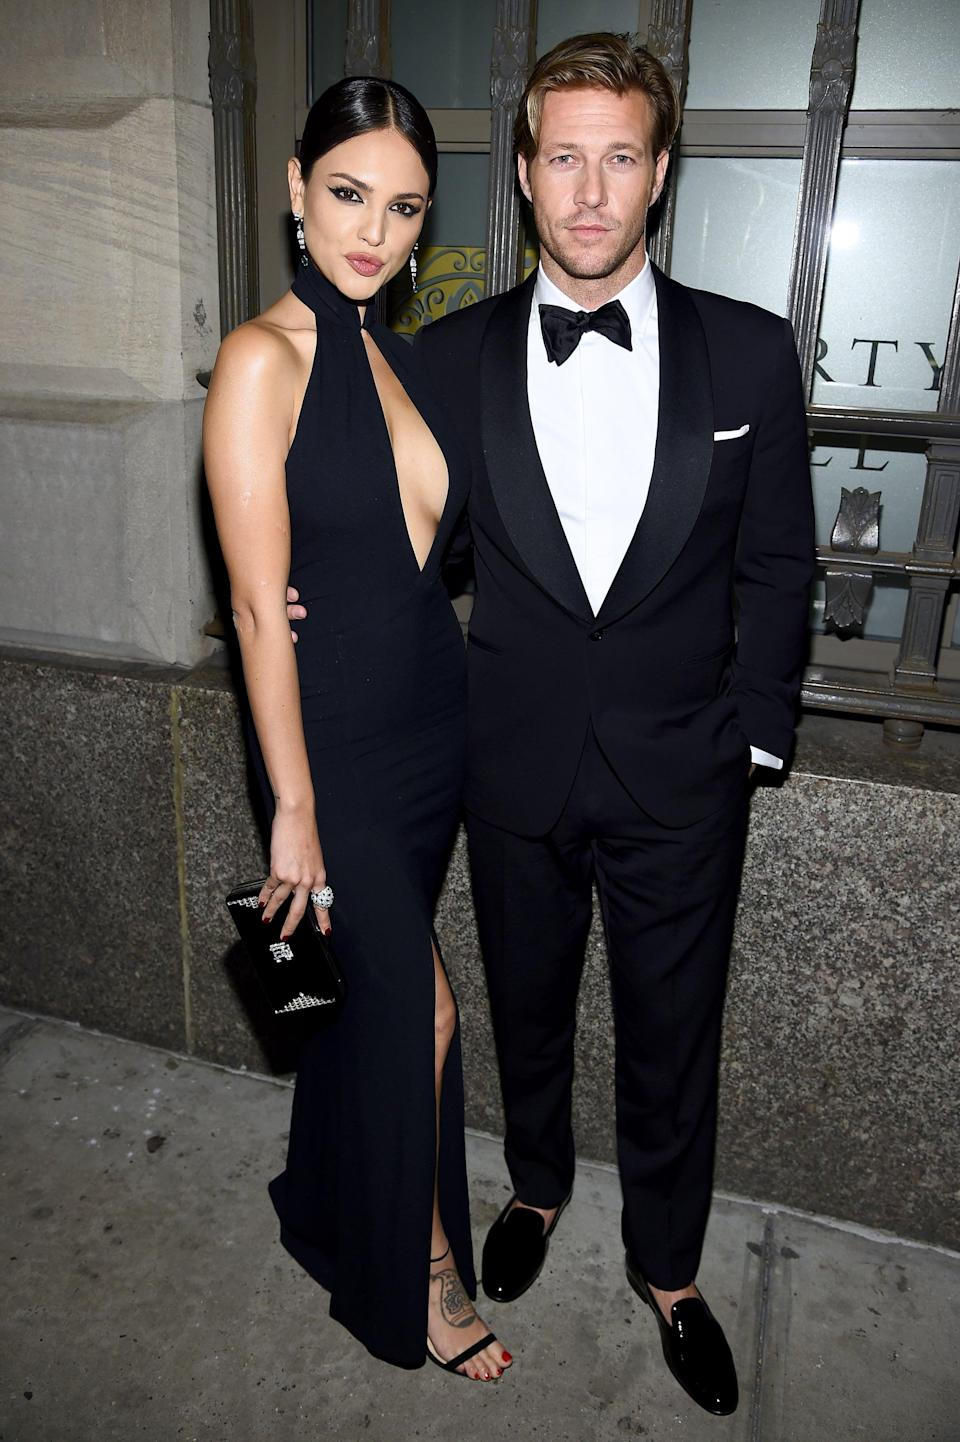 """<p>Not long after breaking up with Olympia, Luke was photographed with actress Eiza González during New York Fashion Week in September 2019. Two months later, they seemingly made their romance official when <a href=""""http://extratv.com/2019/11/11/pda-alert-eiza-gonzalez-and-luke-bracey-confirm-relationship-with-a-kiss/"""" class=""""link rapid-noclick-resp"""" rel=""""nofollow noopener"""" target=""""_blank"""" data-ylk=""""slk:they were caught kissing"""">they were caught kissing</a> in Los Angeles. In December 2019, <a href=""""http://www.justjared.com/2019/12/07/eiza-gonzalez-boyfriend-luke-bracey-bare-hot-bodies-at-the-beach-in-mexico/http://www.justjared.com/2019/12/07/eiza-gonzalez-boyfriend-luke-bracey-bare-hot-bodies-at-the-beach-in-mexico/"""" class=""""link rapid-noclick-resp"""" rel=""""nofollow noopener"""" target=""""_blank"""" data-ylk=""""slk:the couple took a romantic trip to Tulum, Mexico"""">the couple took a romantic trip to Tulum, Mexico</a>, where they packed on the PDA, though there were few sightings of the two together after that. By summer 2020, <a href=""""http://www.eonline.com/news/1203113/where-timothee-chalamet-and-eiza-gonzalezs-romance-stands-after-that-cabo-getaway"""" class=""""link rapid-noclick-resp"""" rel=""""nofollow noopener"""" target=""""_blank"""" data-ylk=""""slk:Eiza was sparking dating rumors with (her now-ex) Timothée Chalamet"""">Eiza was sparking dating rumors with (her now-ex) Timothée Chalamet</a>. </p>"""